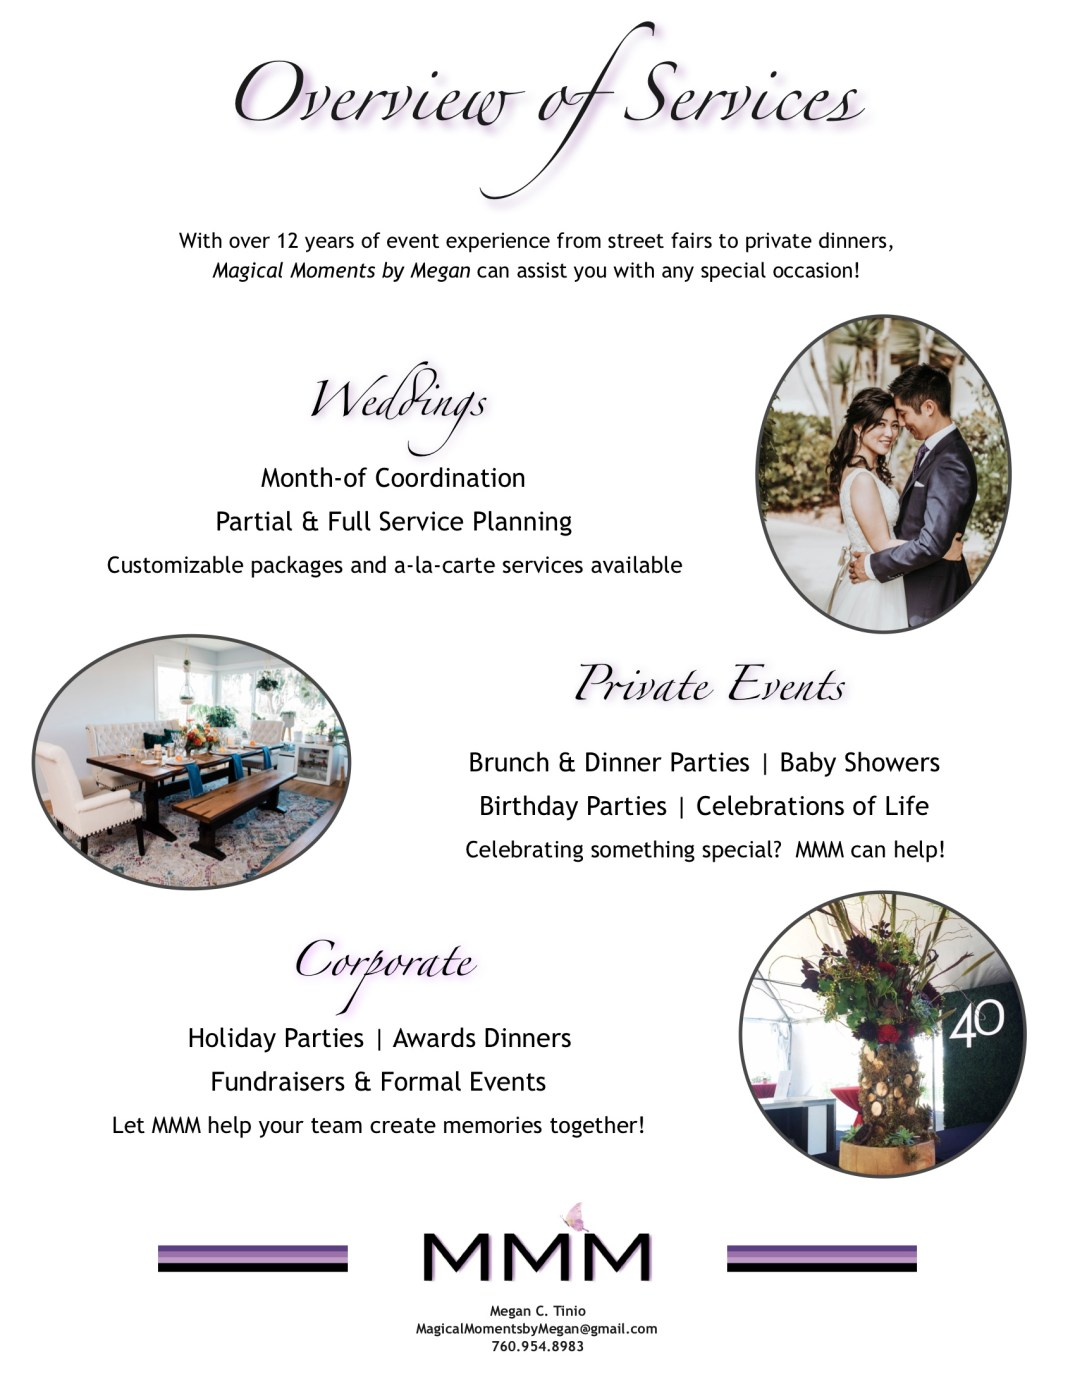 Magical Moments by Megan - Company Information Packet_3